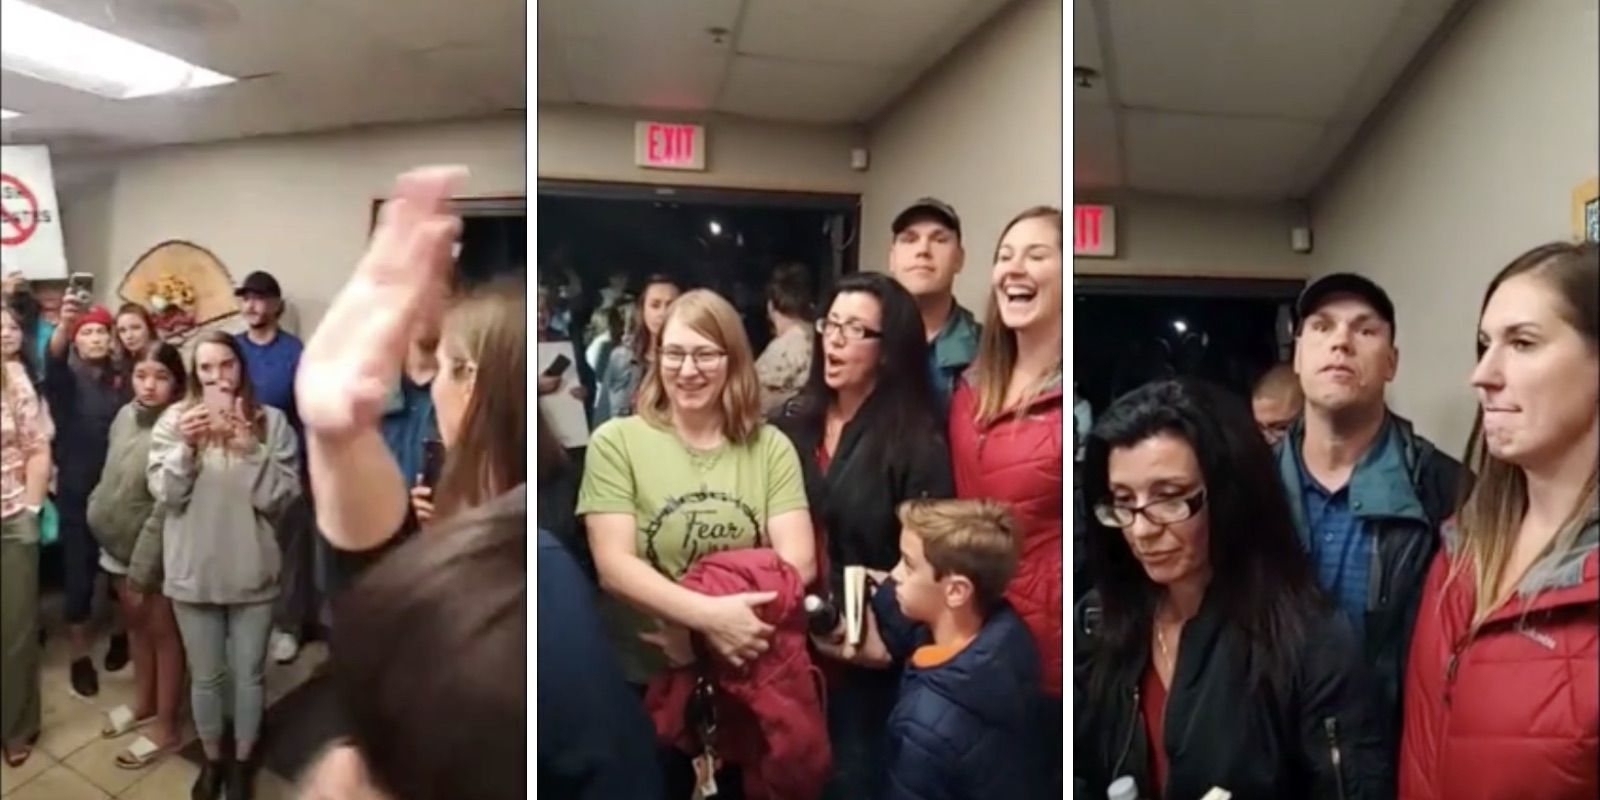 Fed-up parents take over school board meeting in attempt to reverse mask mandate